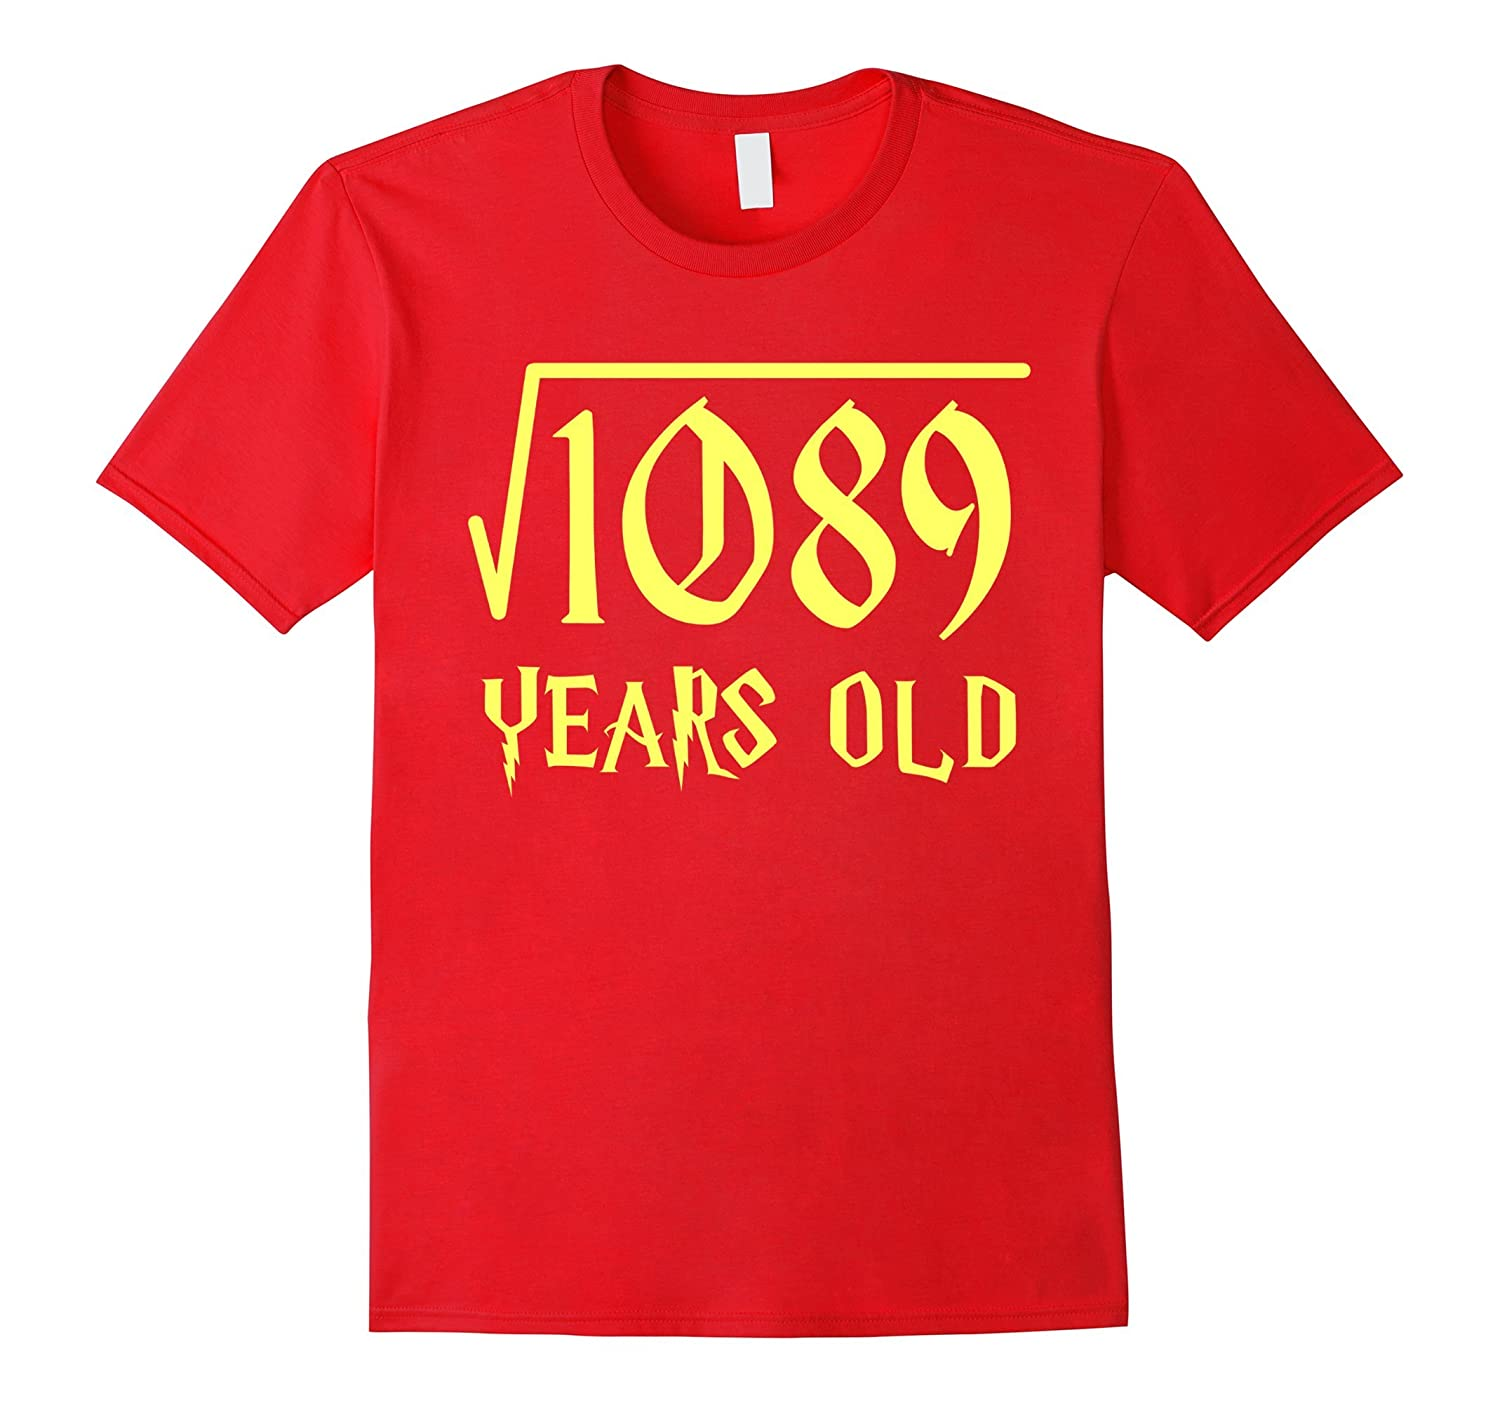 Square root of 1089 33 years old 33rd birthday t shirt cl for Square root of 1089